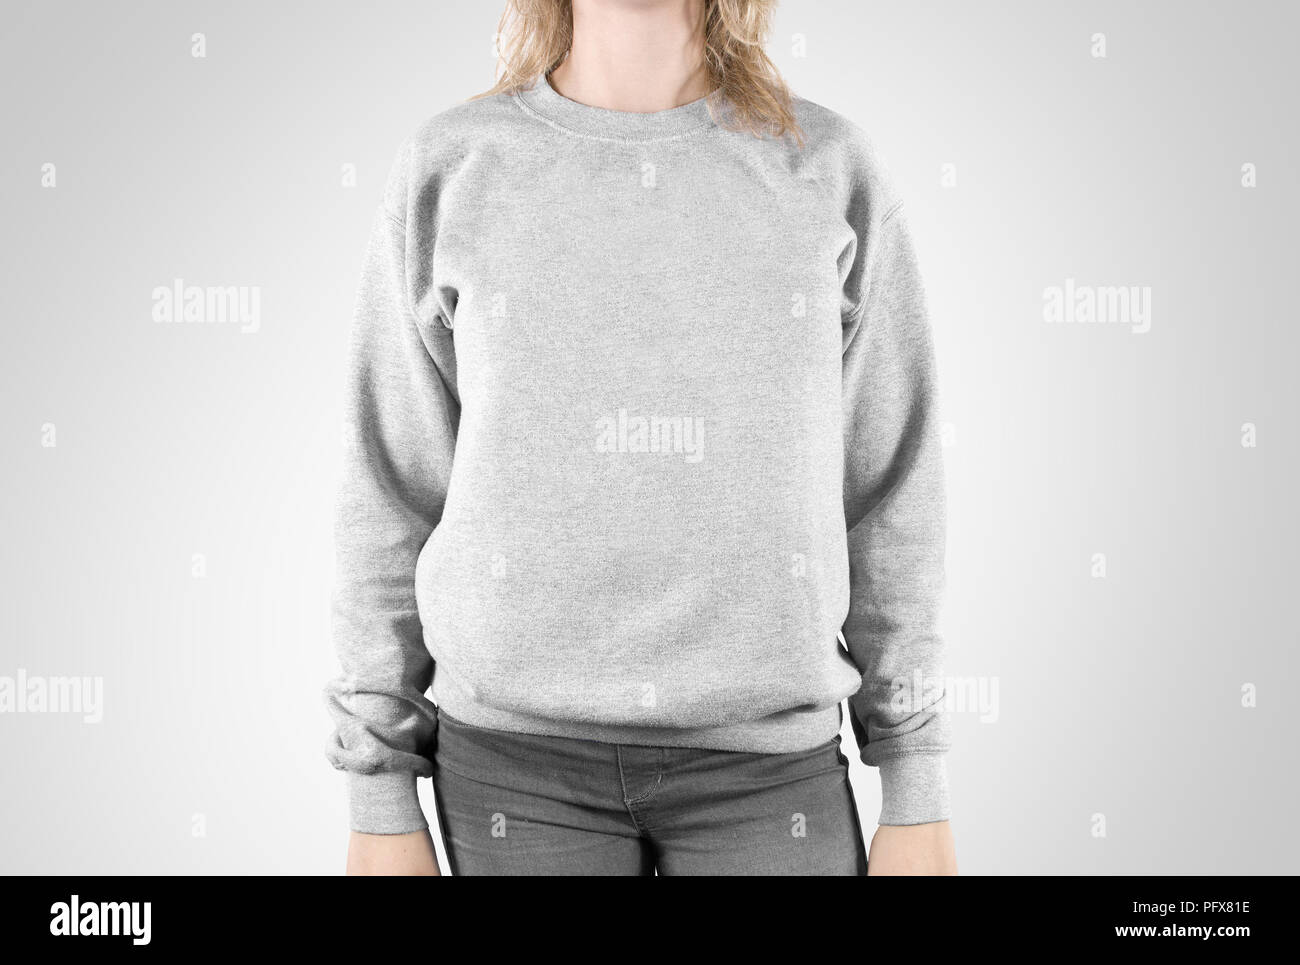 Blank sweatshirt mock up isolated. Female wear plain hoodie mockup. Plain hoody design presentation. Clear loose overall model. Pullover for print. Man clothes sweat shirt template sweater wearing - Stock Image